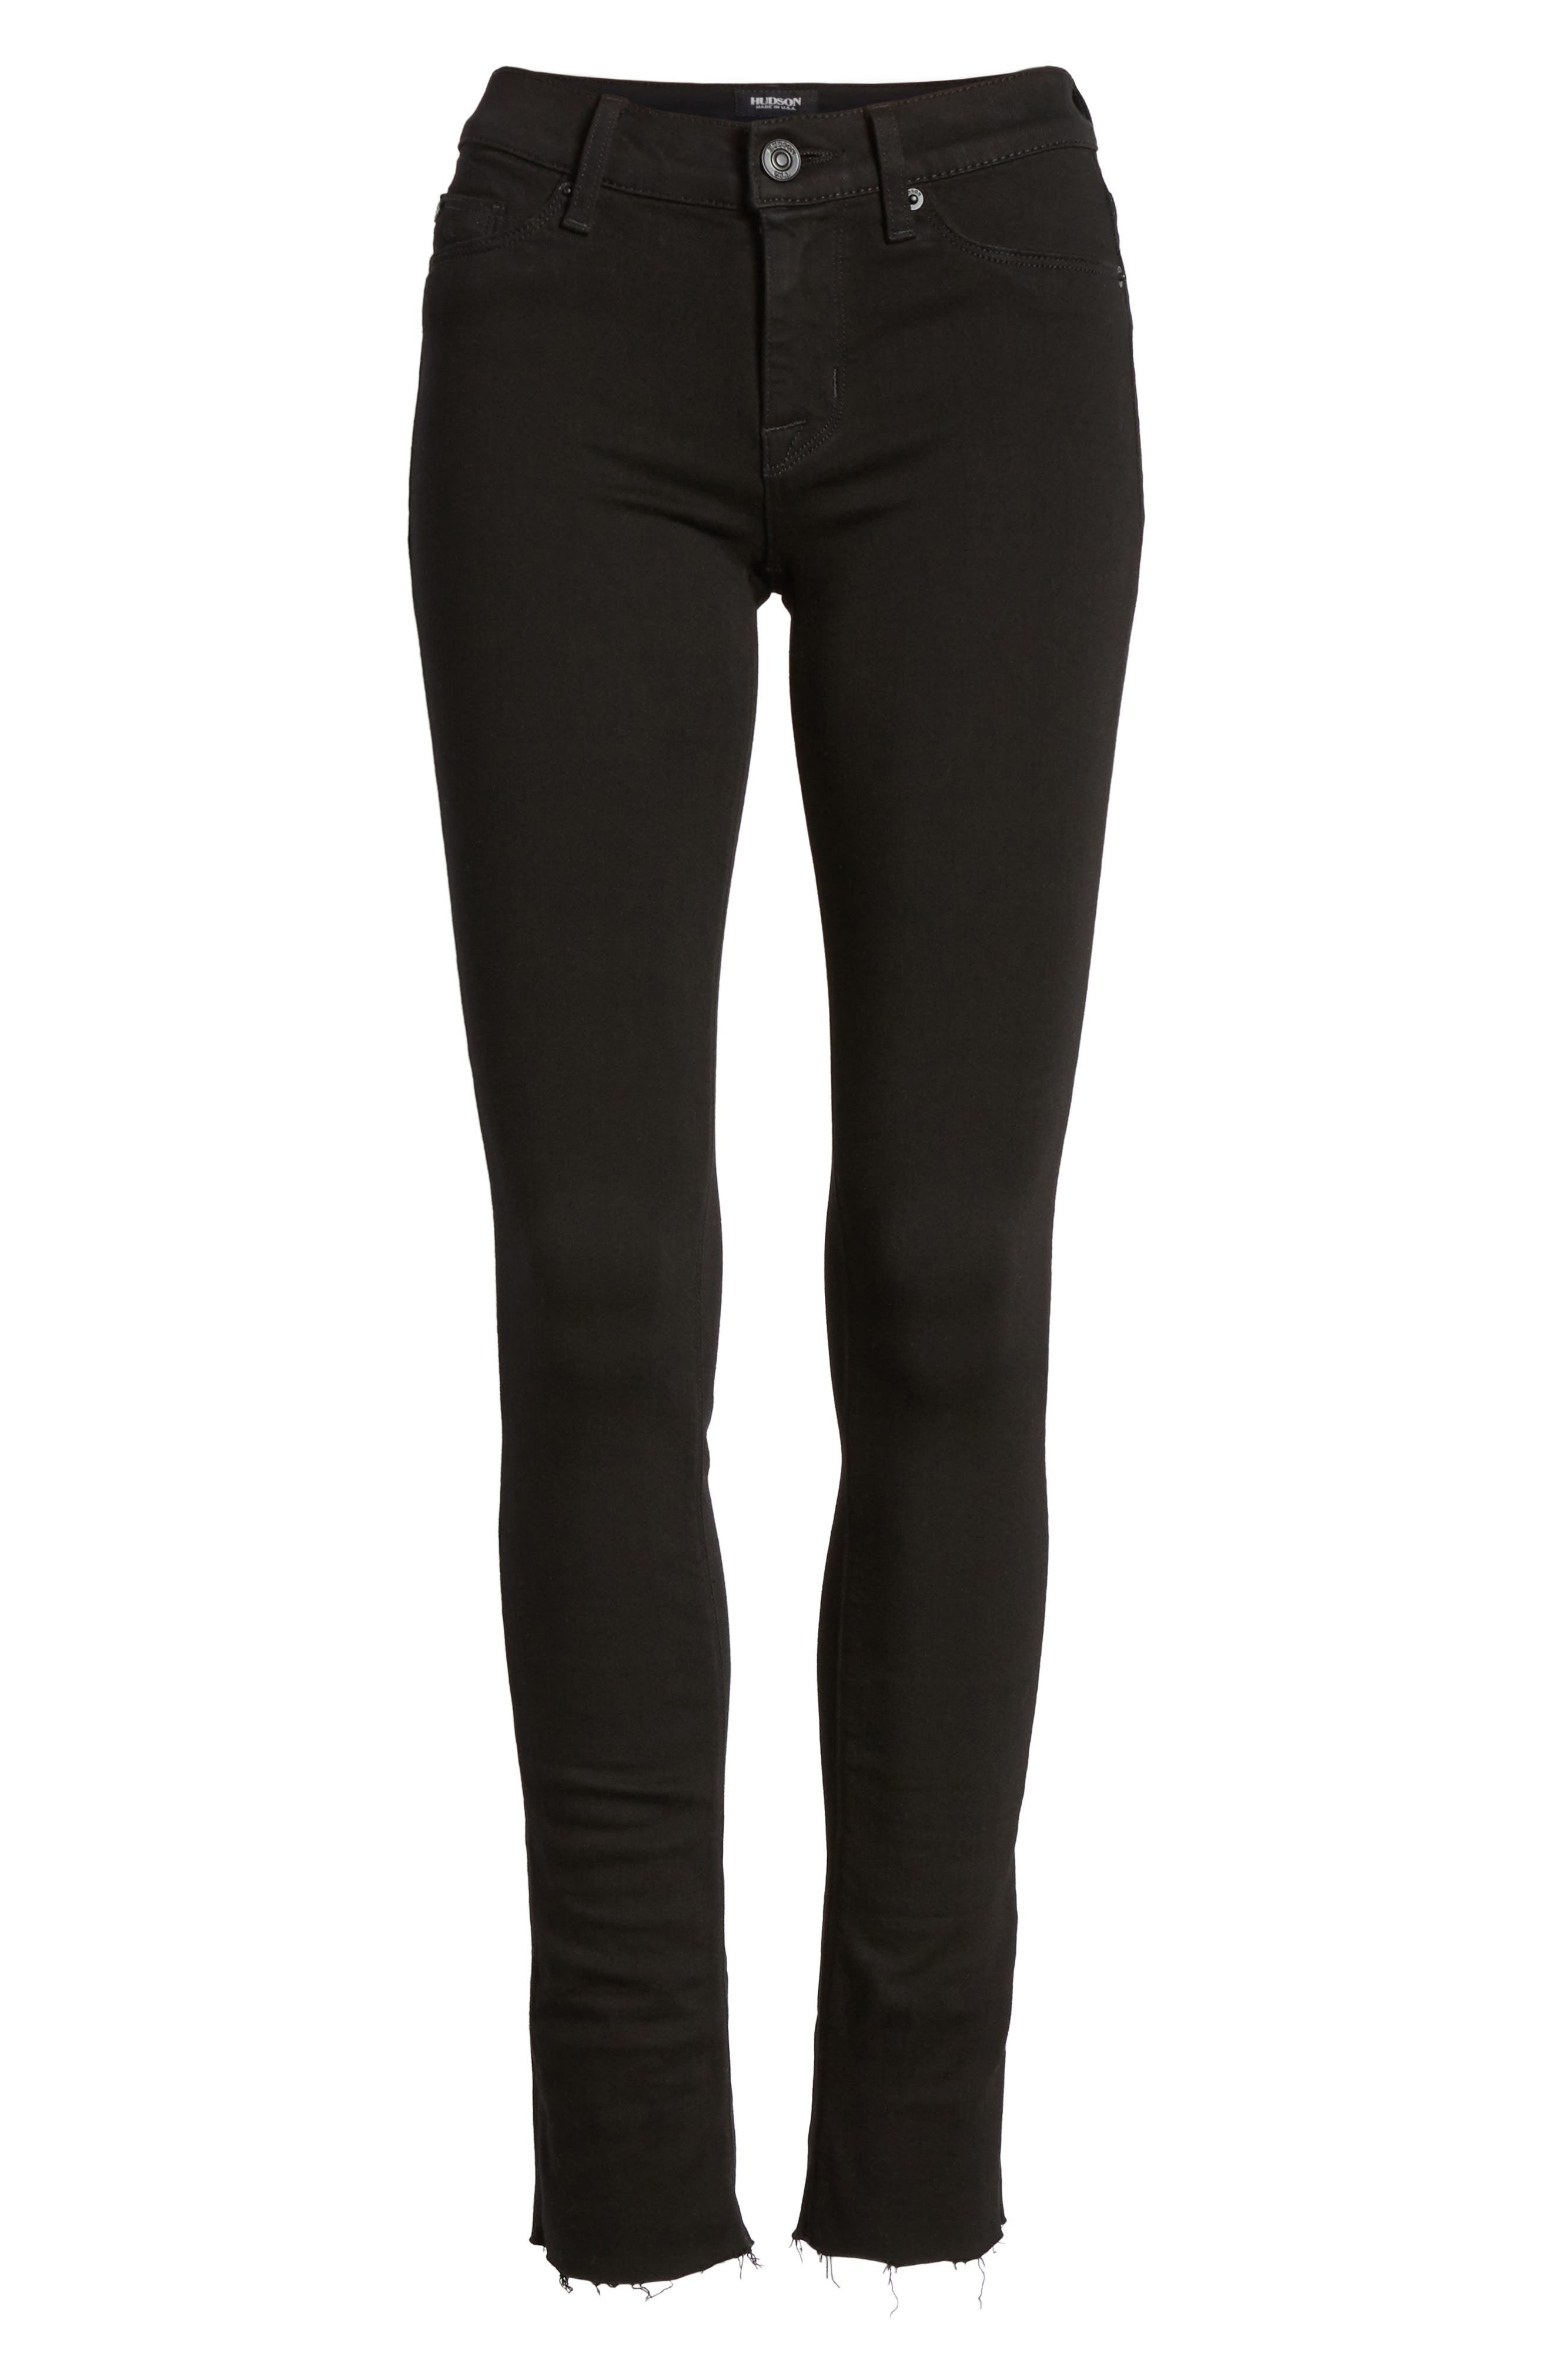 Tally Crop Skinny Jeans,                             Alternate thumbnail 7, color,                             Black